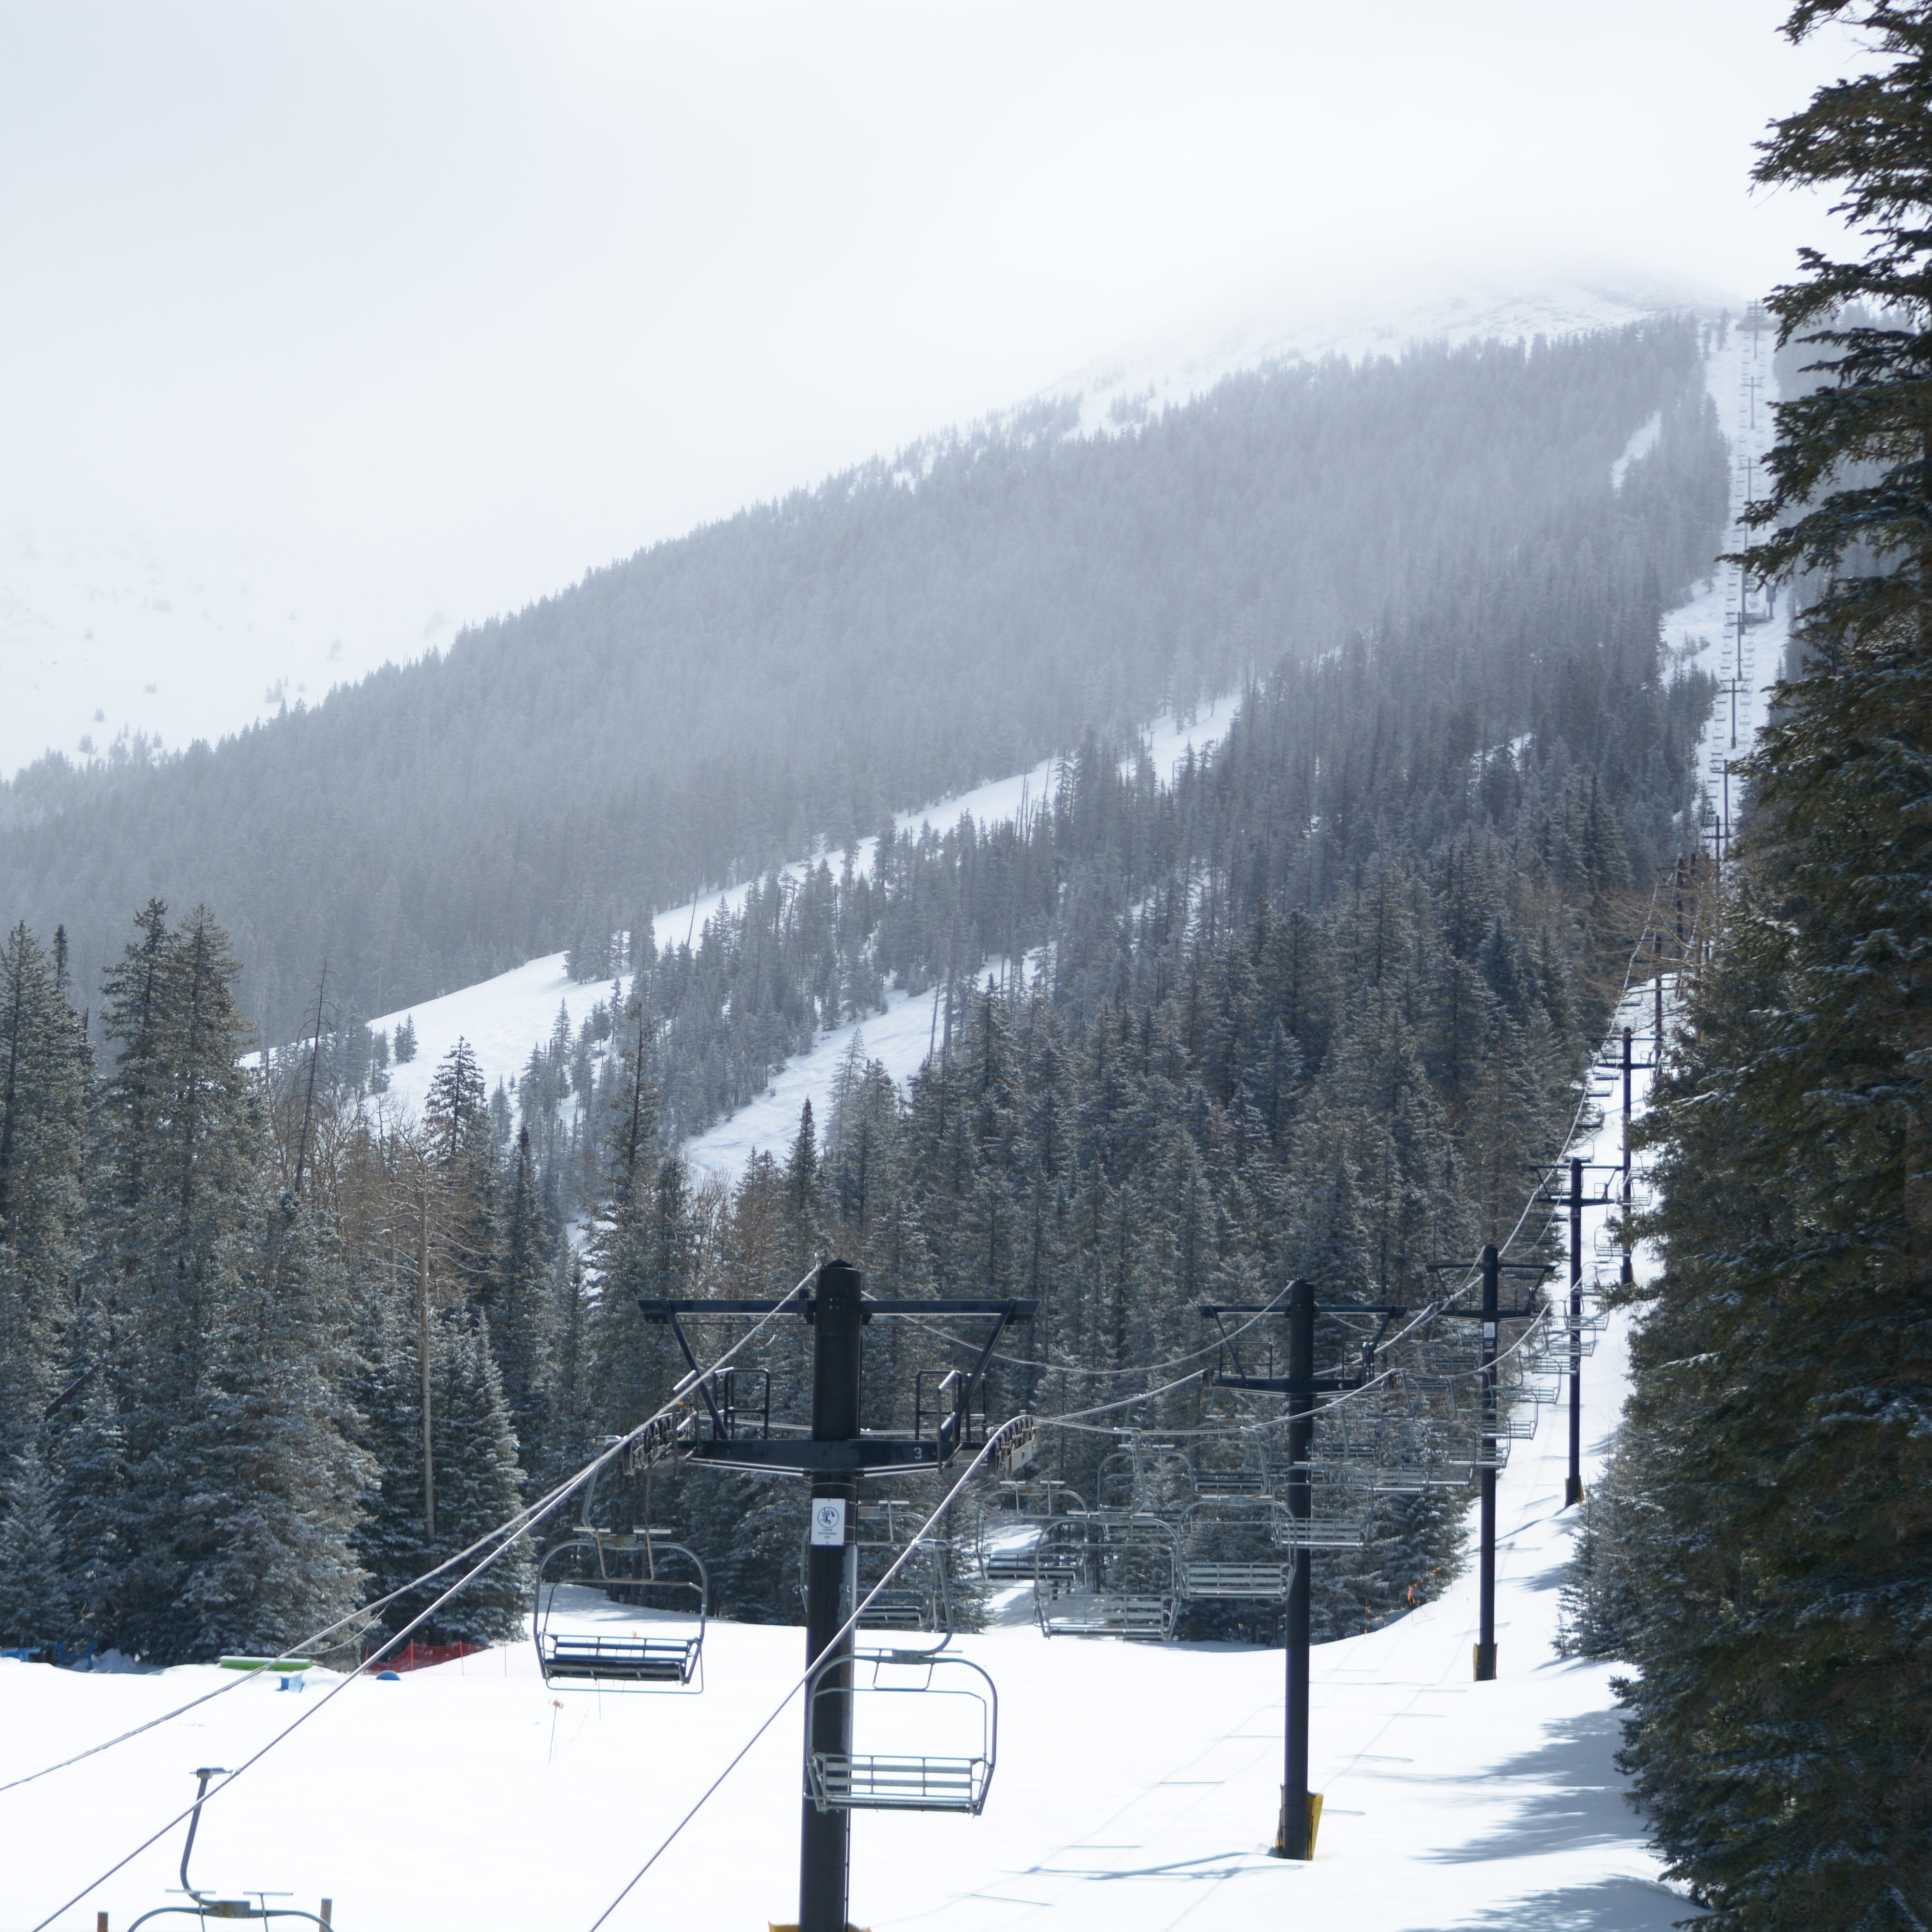 Arizona Snowbowl ski resort planning to stay open